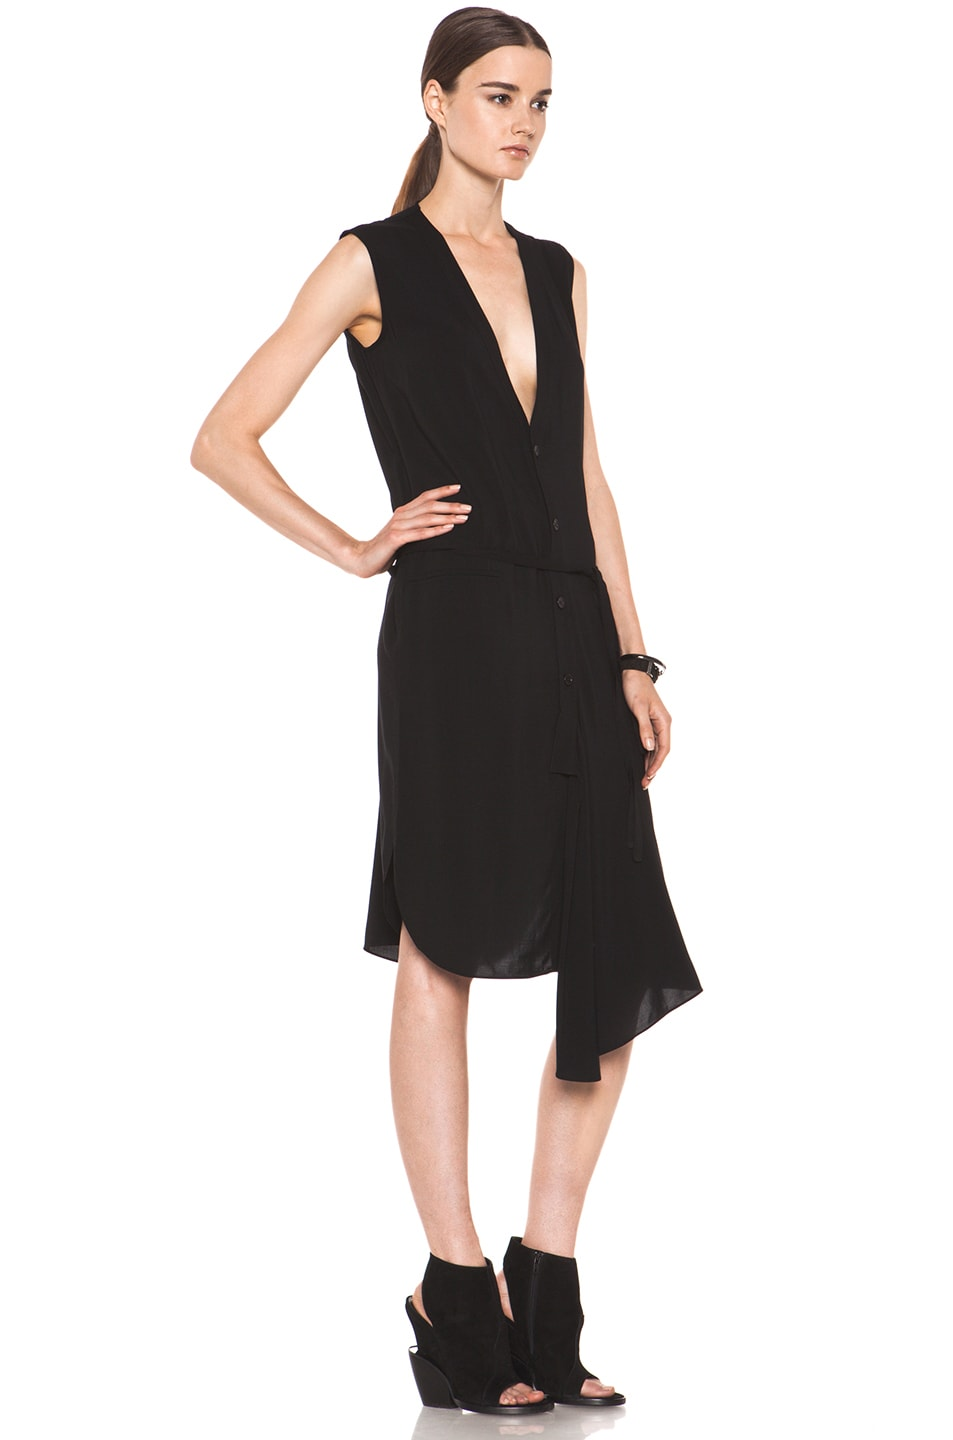 Image 3 of Tess Giberson Asymmetric Shirt Dress in Black